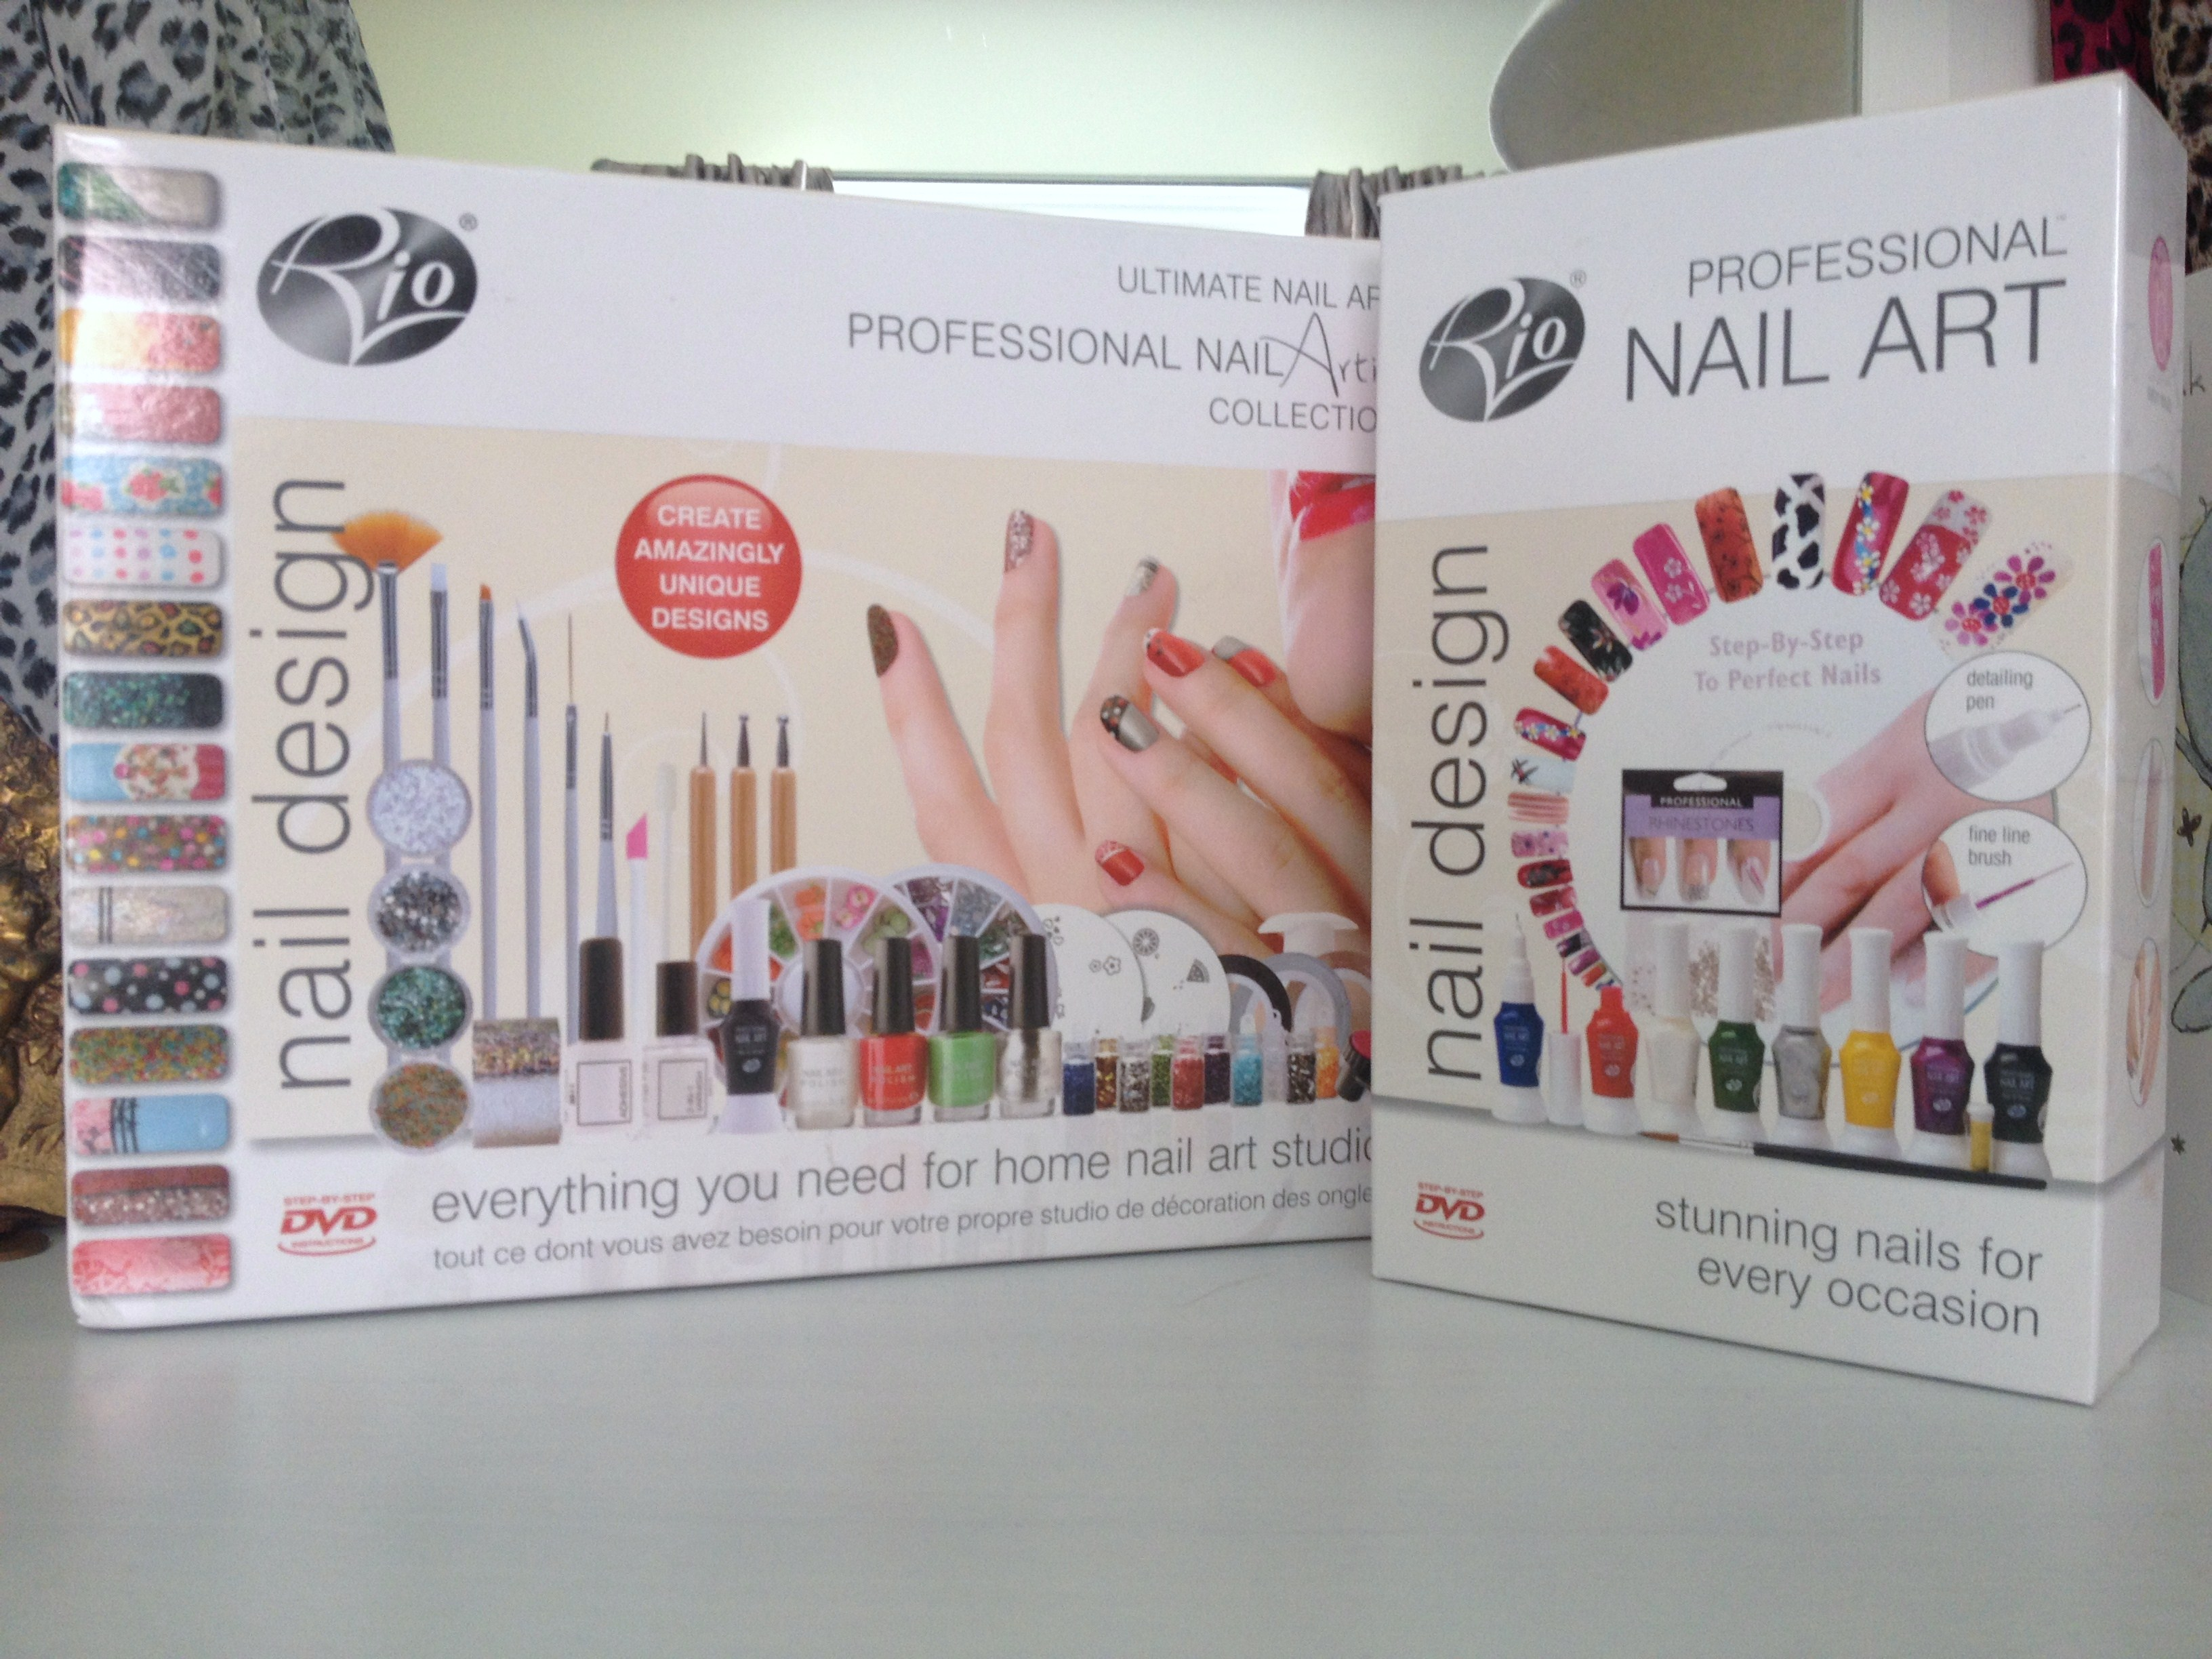 Beautifully Superfluous Review Rio Ultimate Nail Art Professional